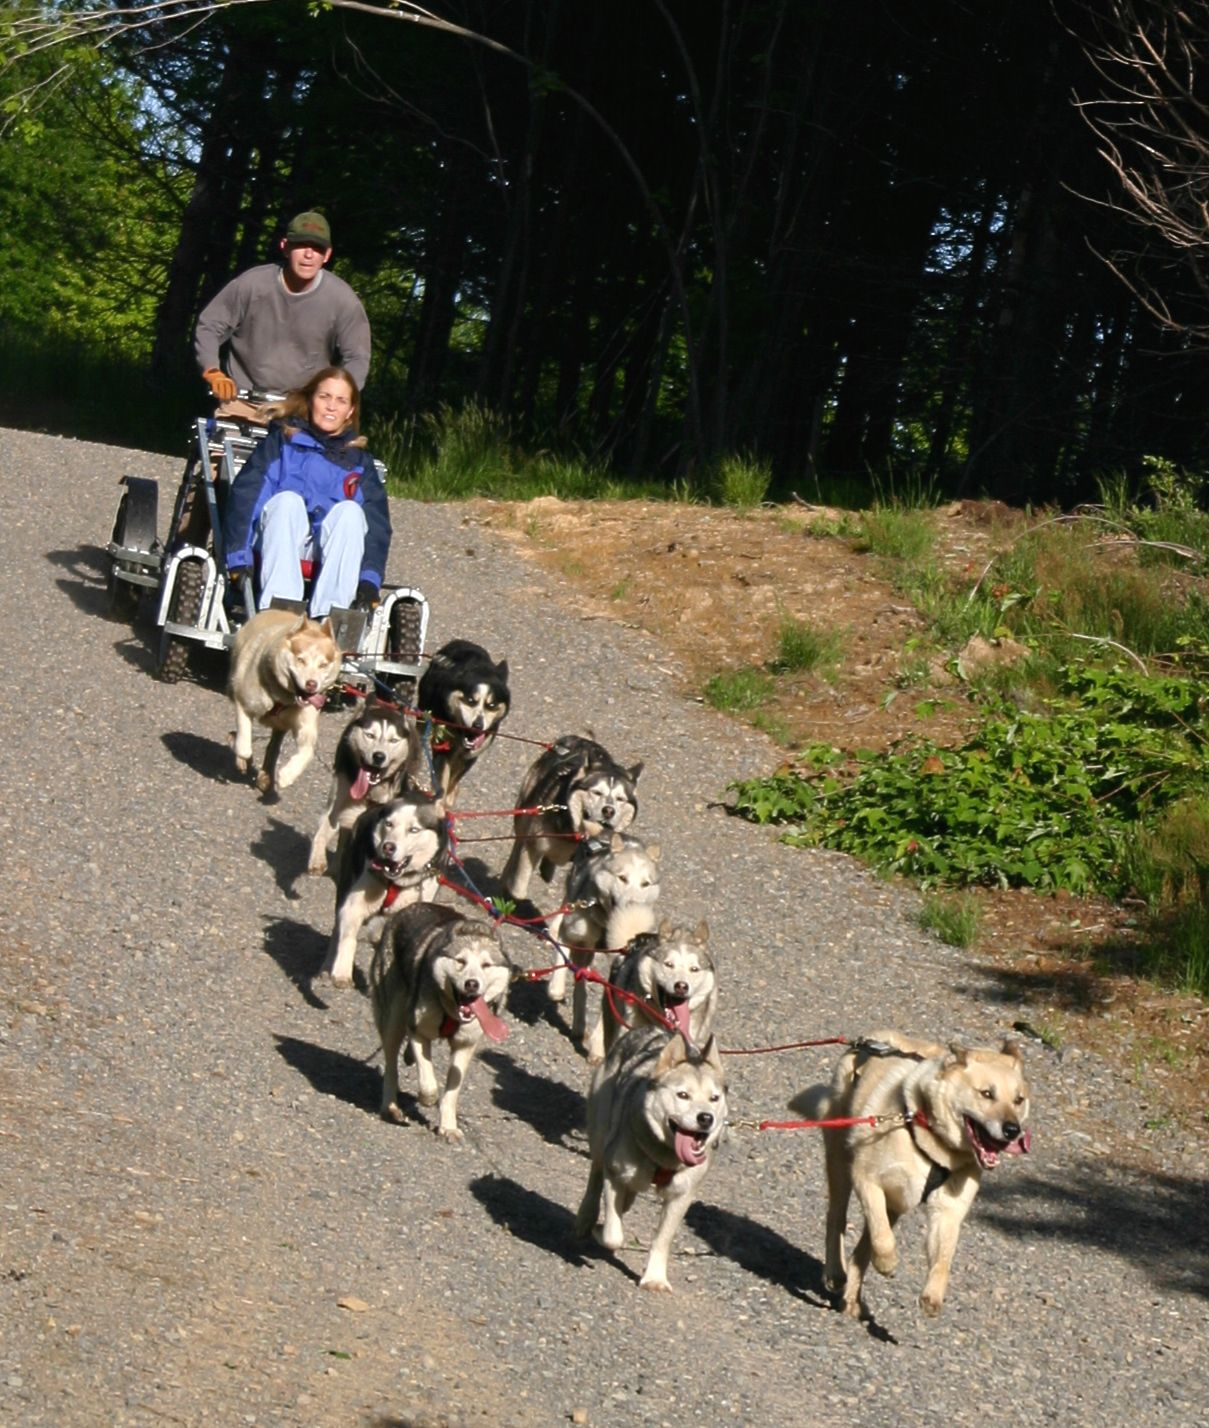 Husky Power Dogsledding Uses A Wheeled Dogsled To Entertain And